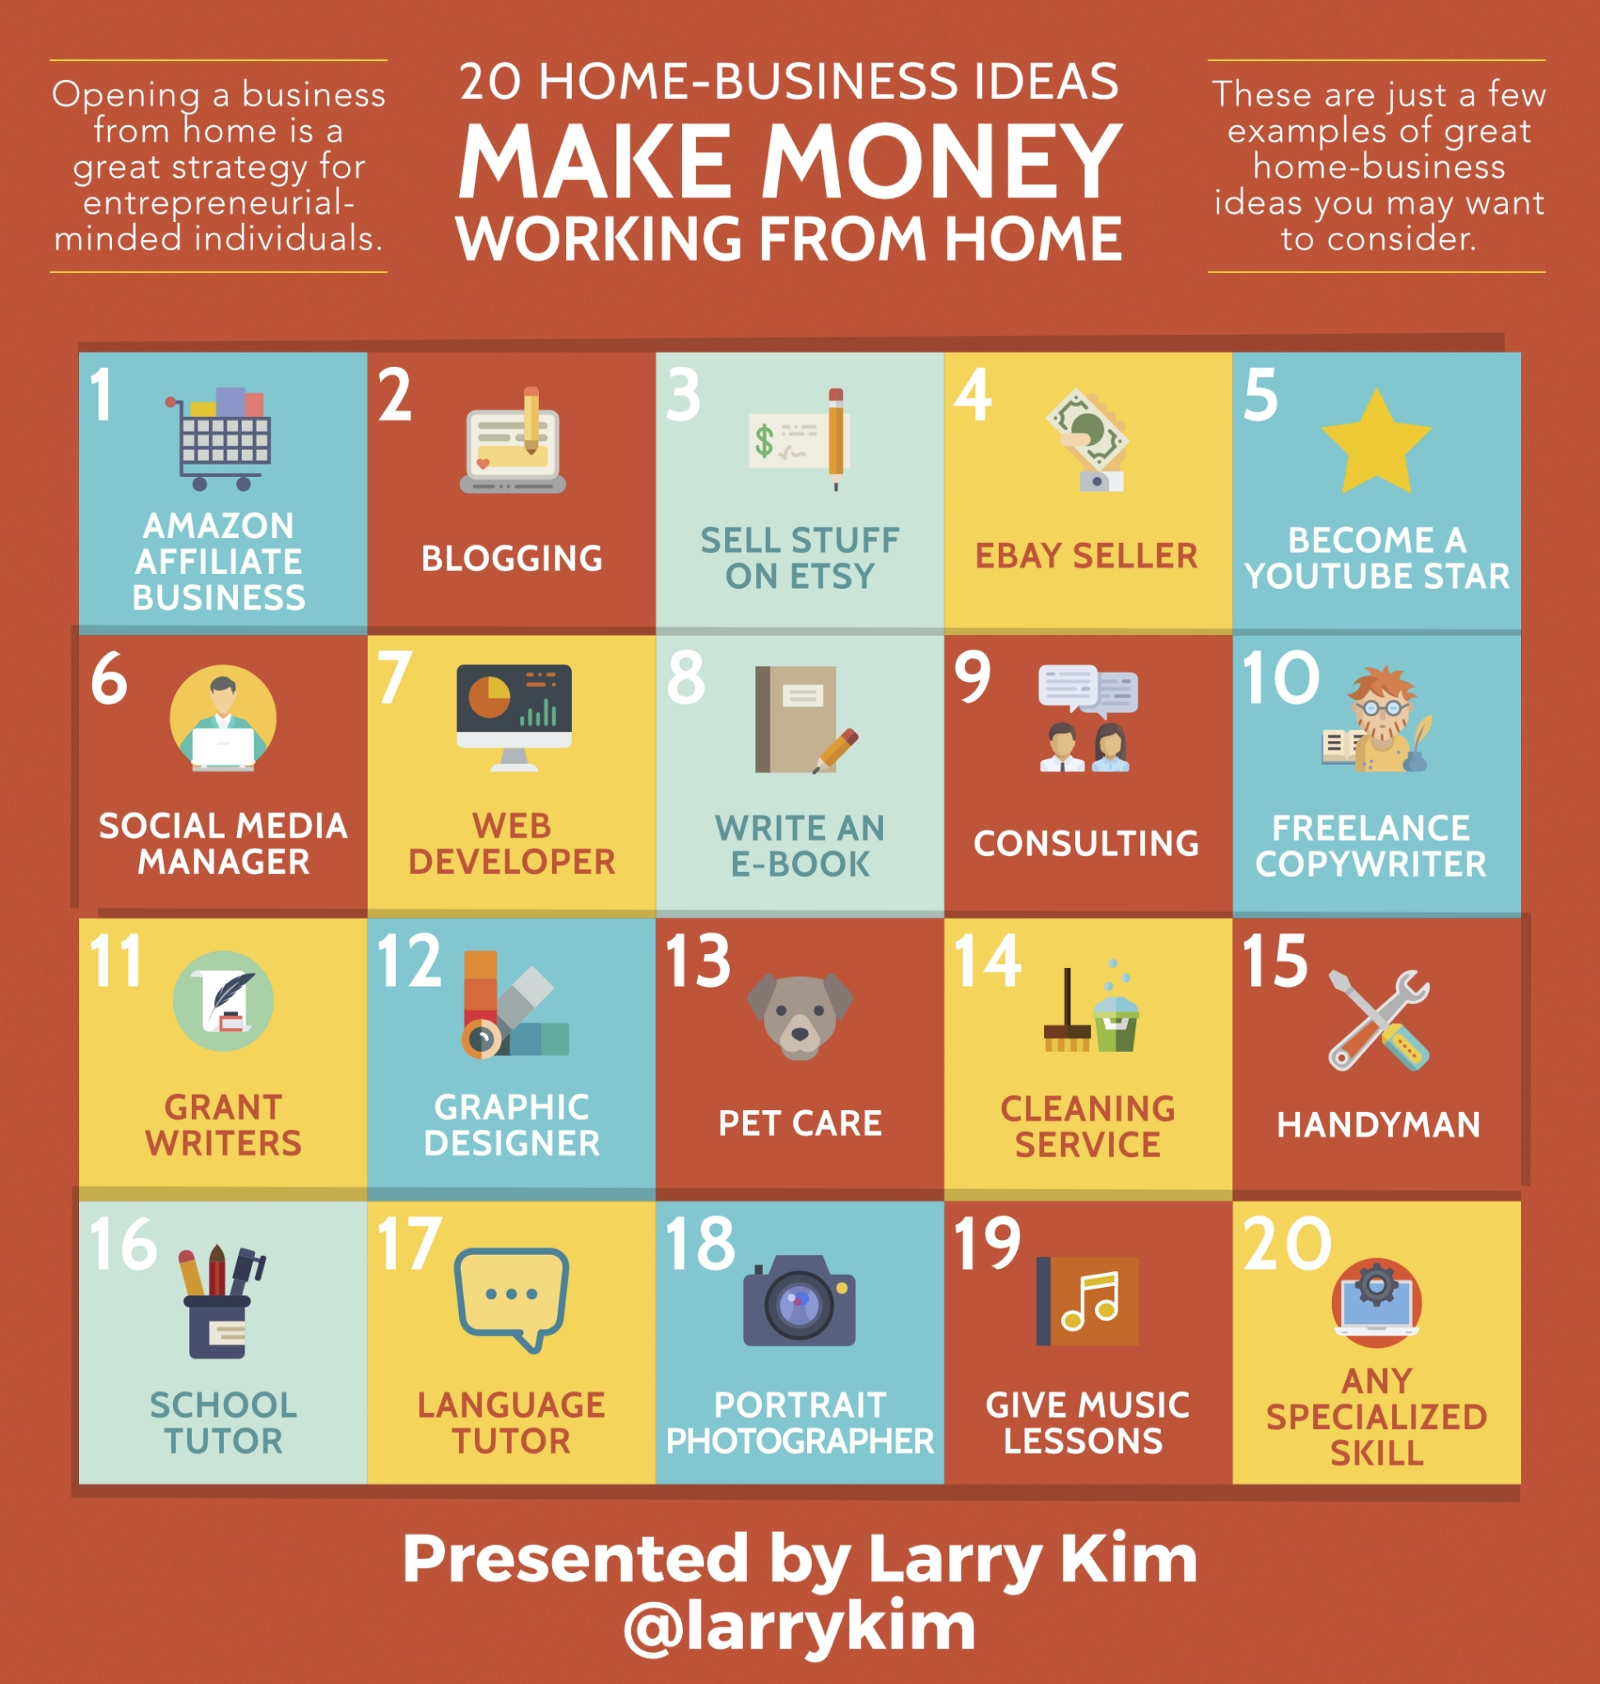 10 Awesome Online Home Based Business Ideas 20 home business ideas make money working from home